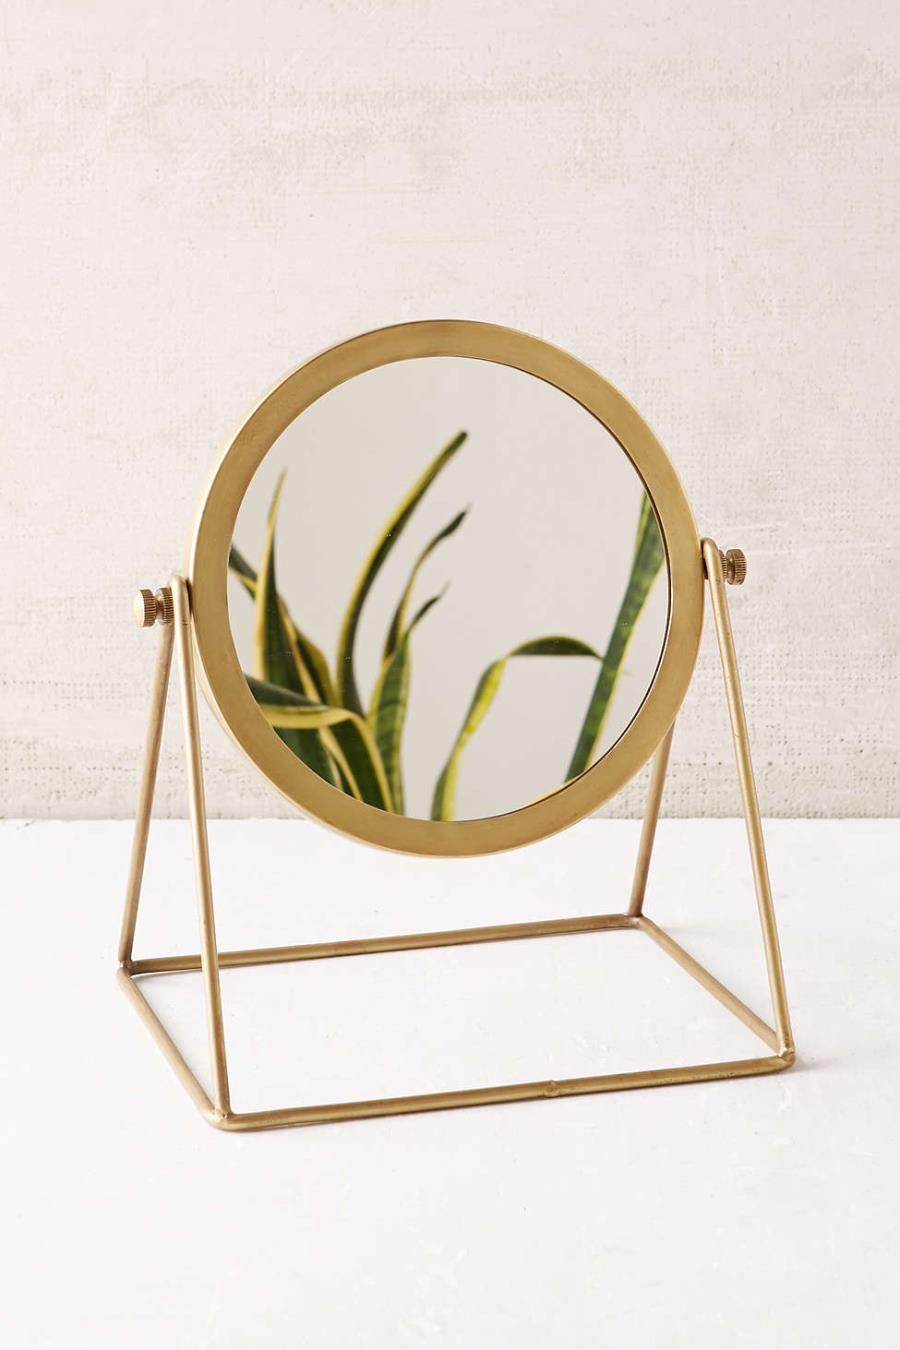 Tabletop mirror from Urban Outfitters